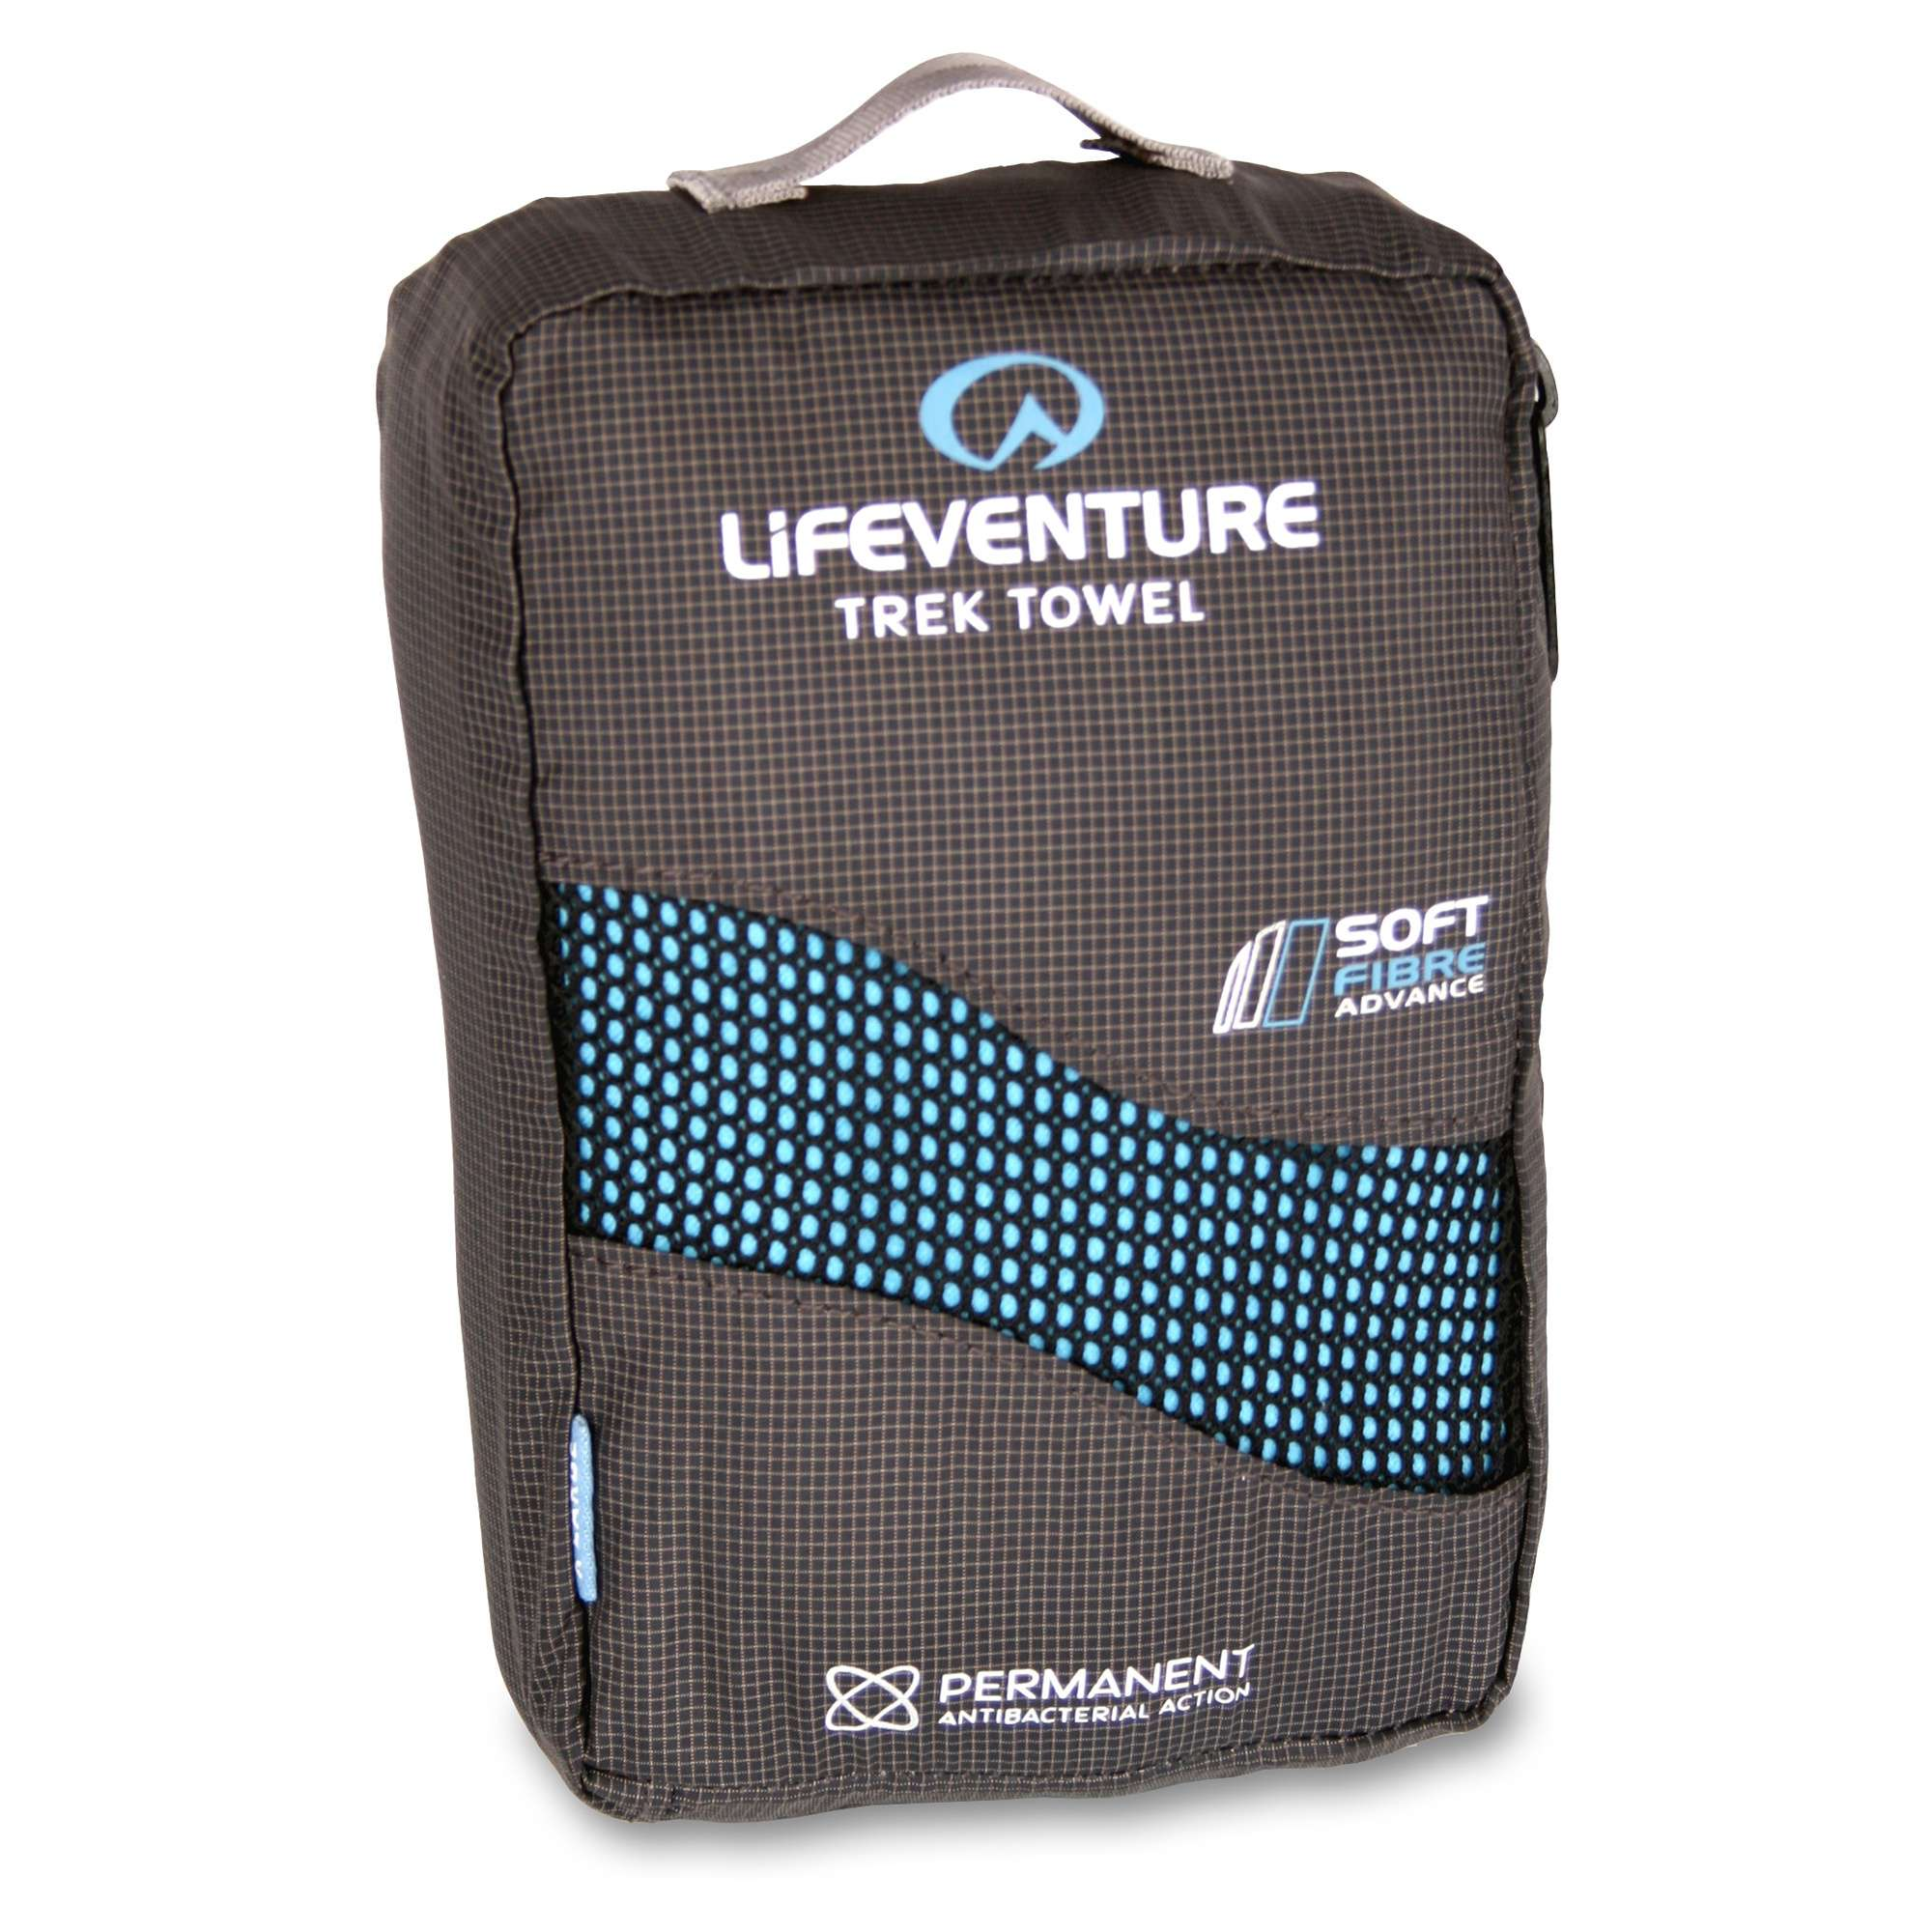 LIFEVENTURE Soft Fibre Giant Towel